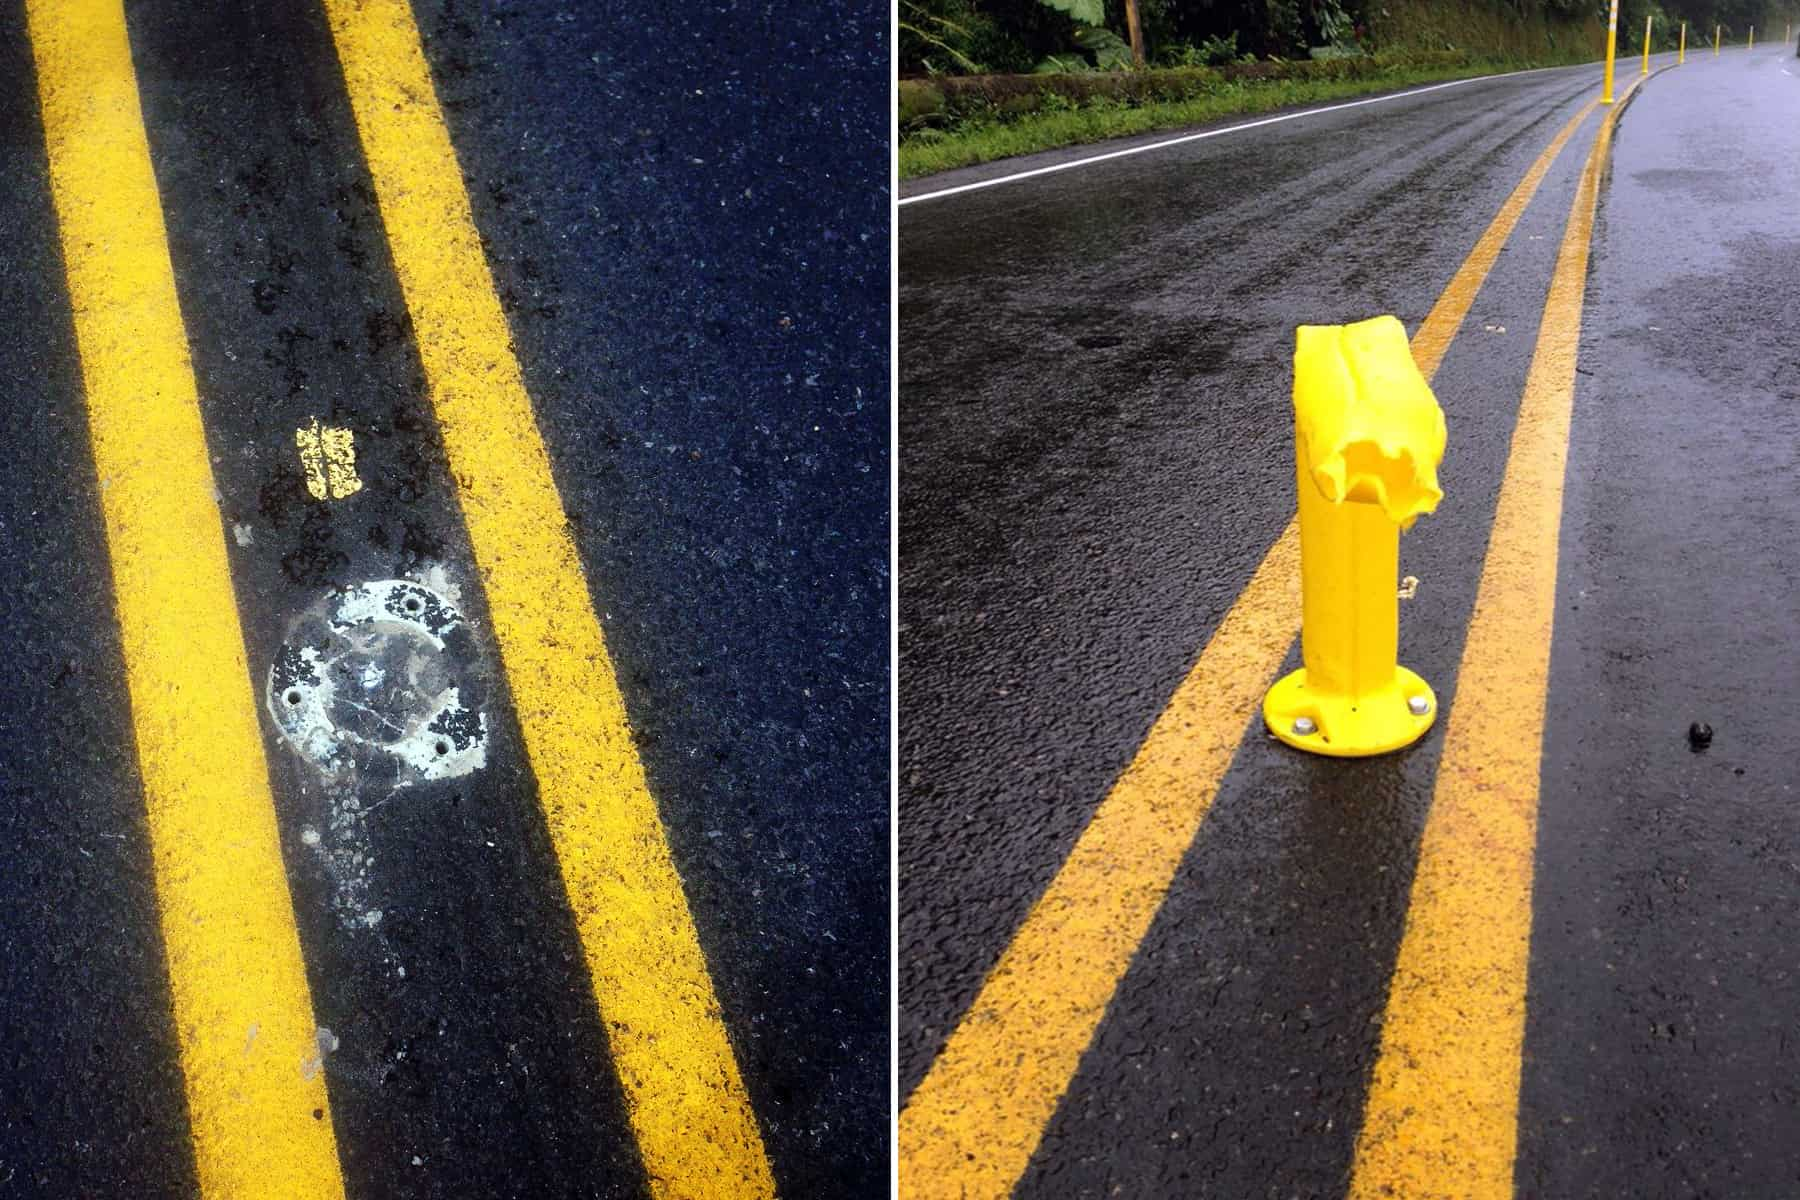 Lane dividers vandalized on Route 32, June 2015